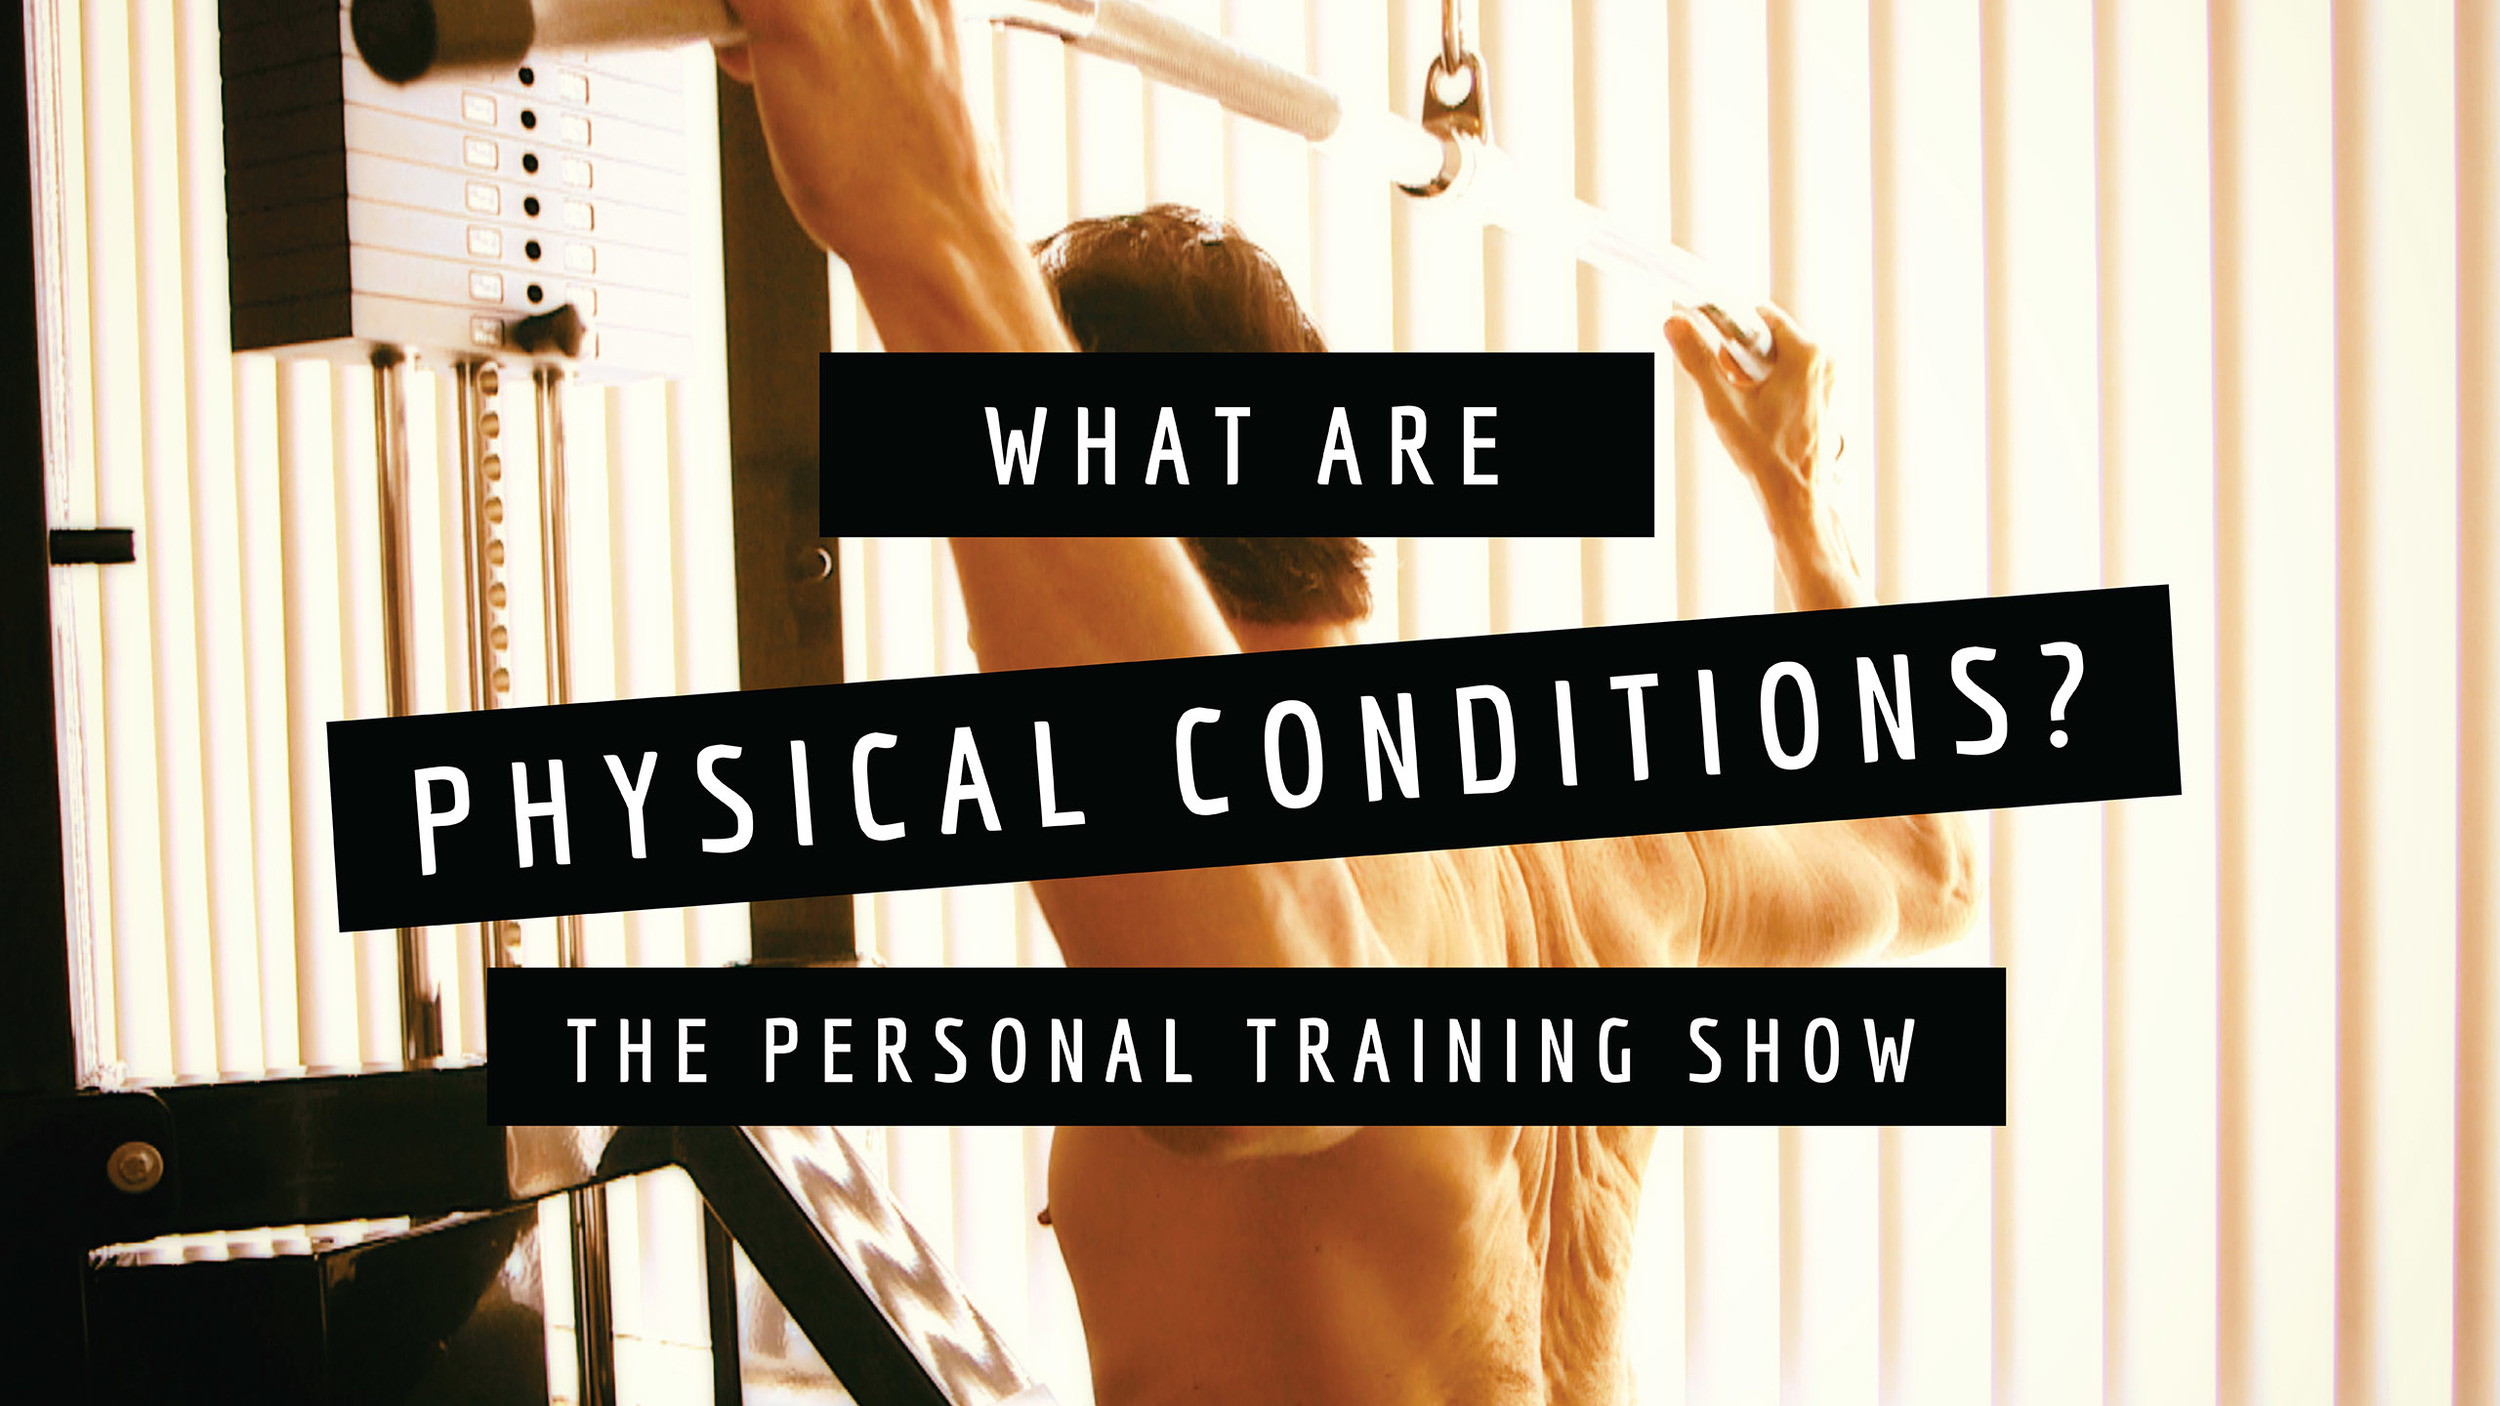 What Are Physical Conditions?